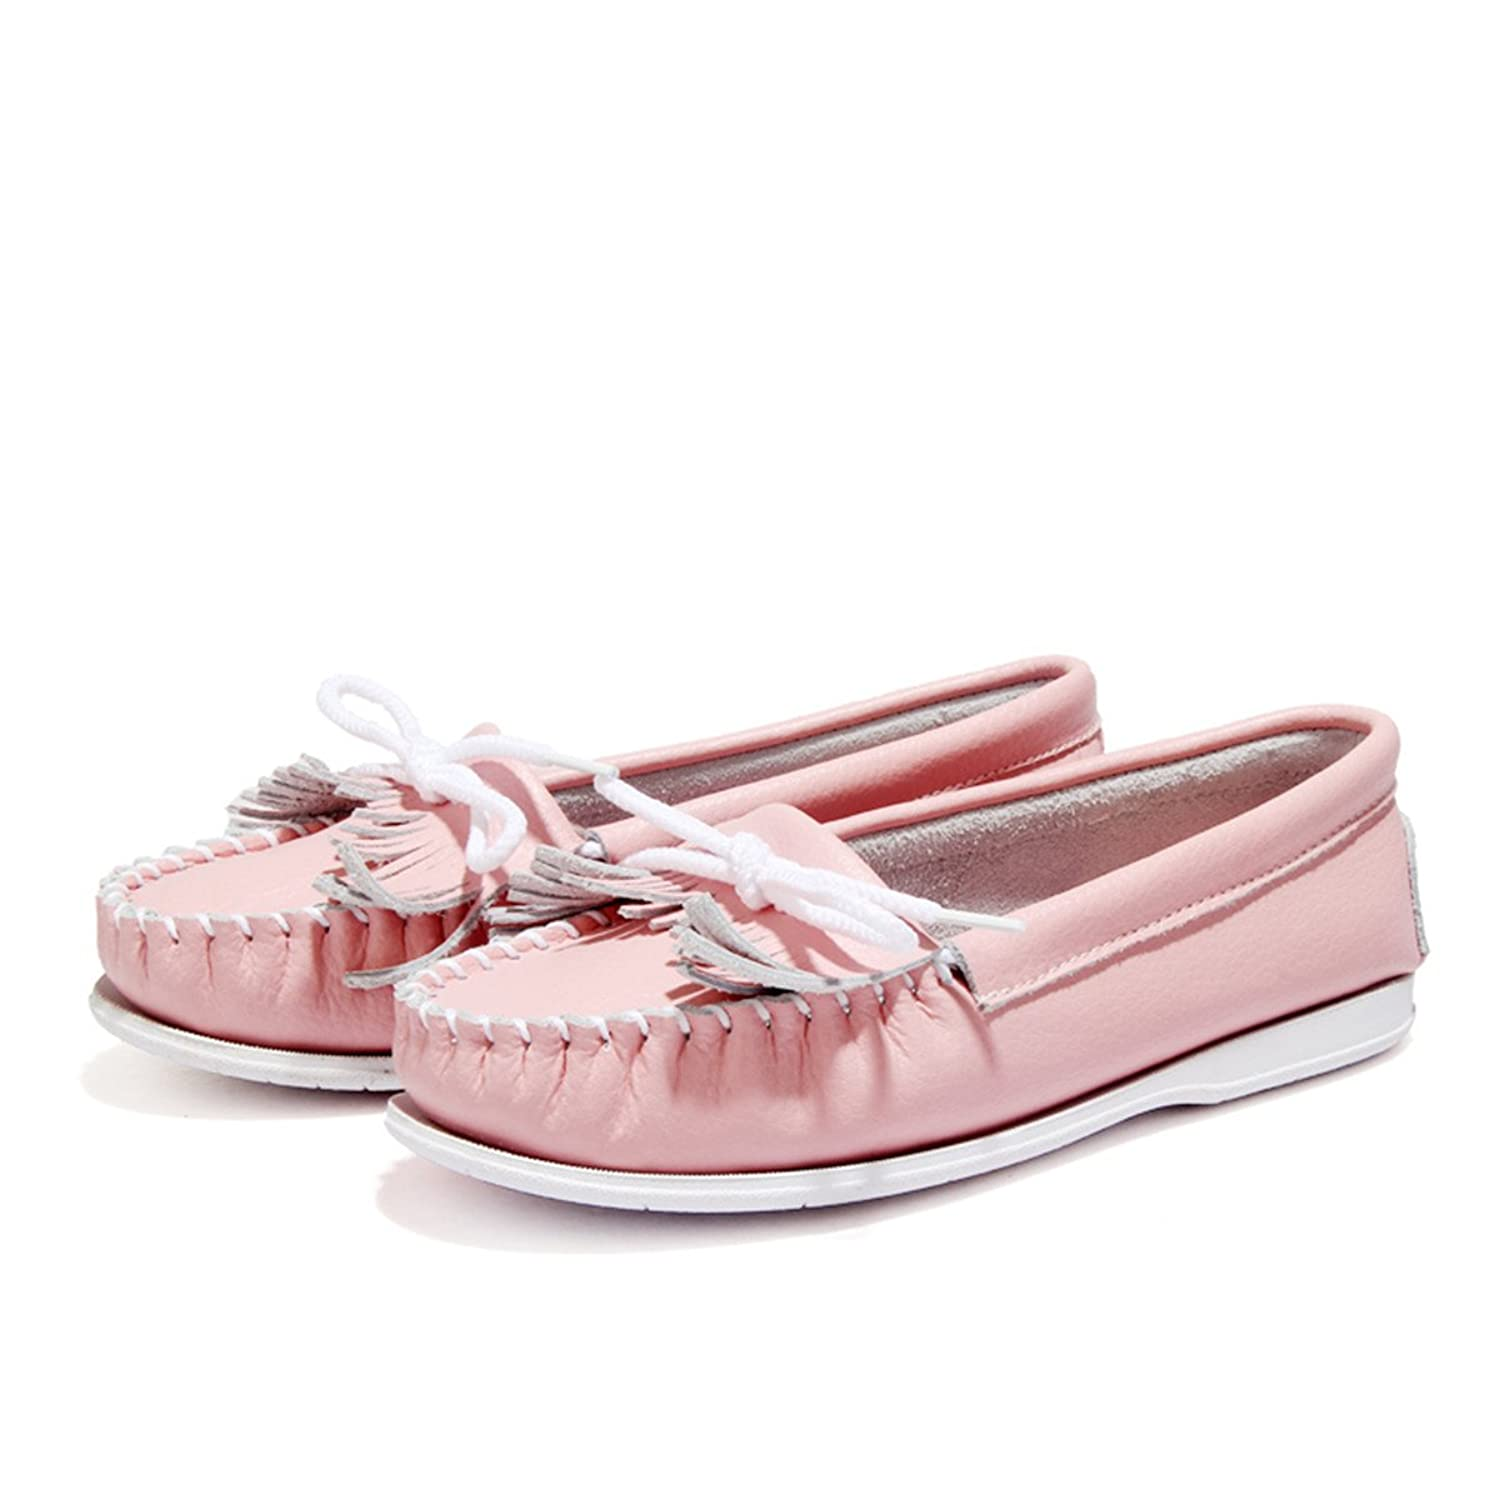 WHENOW Women's Comfortable Tassel Slip On Flat Shoes Driving Shoes